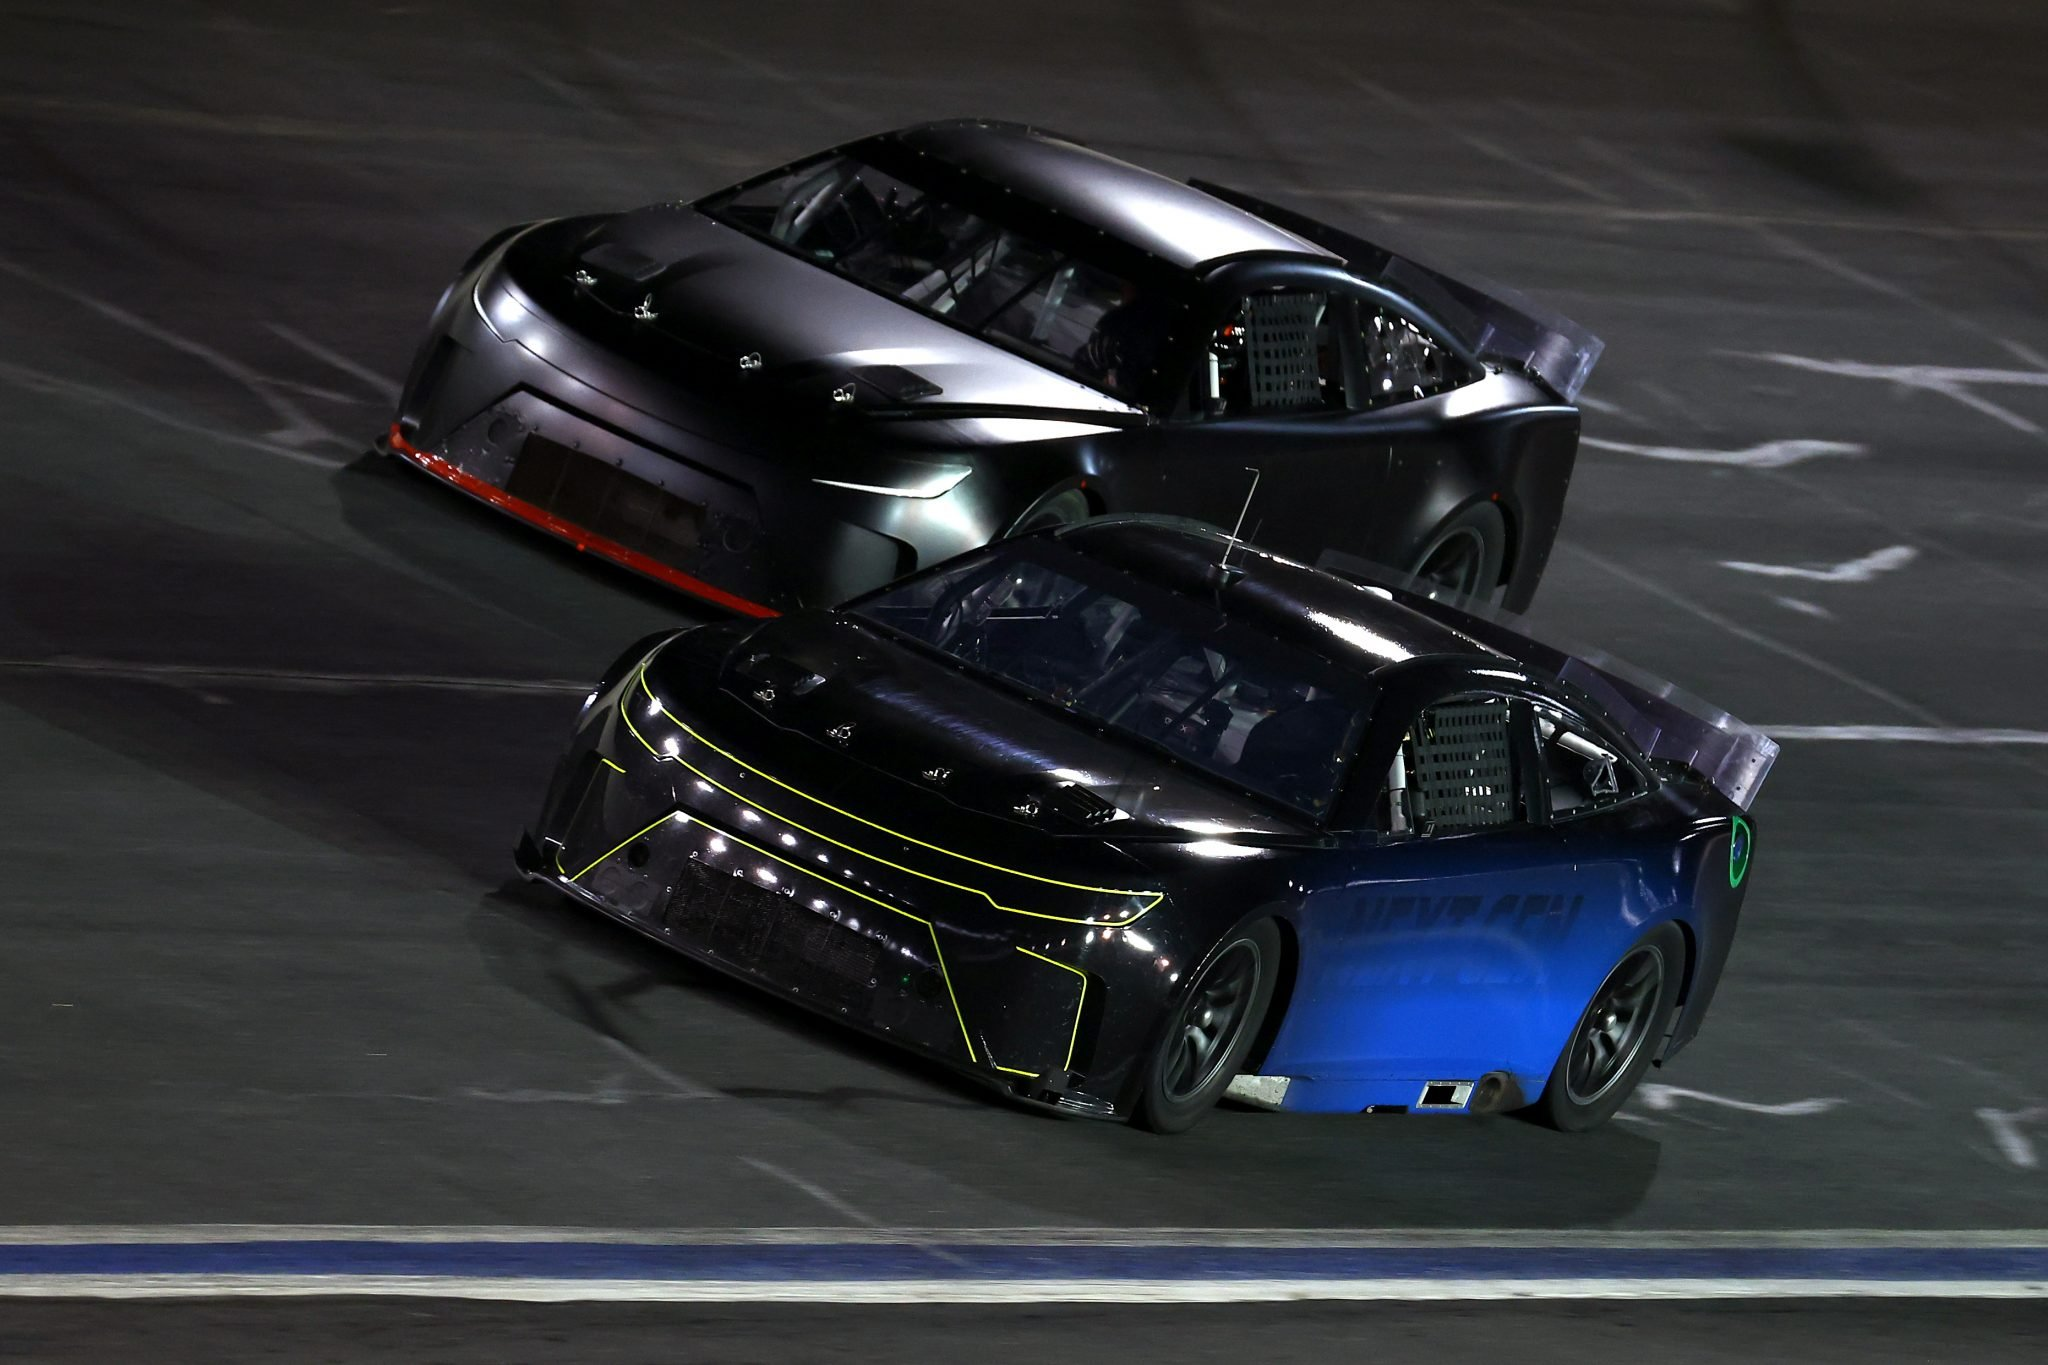 CONCORD, NORTH CAROLINA - NOVEMBER 18: Kurt Busch and Martin Truex Jr. drive the NASCAR Next Gen car during the NASCAR Cup Series test at Charlotte Motor Speedway on November 18, 2020 in Concord, North Carolina. (Photo by Jared C. Tilton/Getty Images) | Getty Images